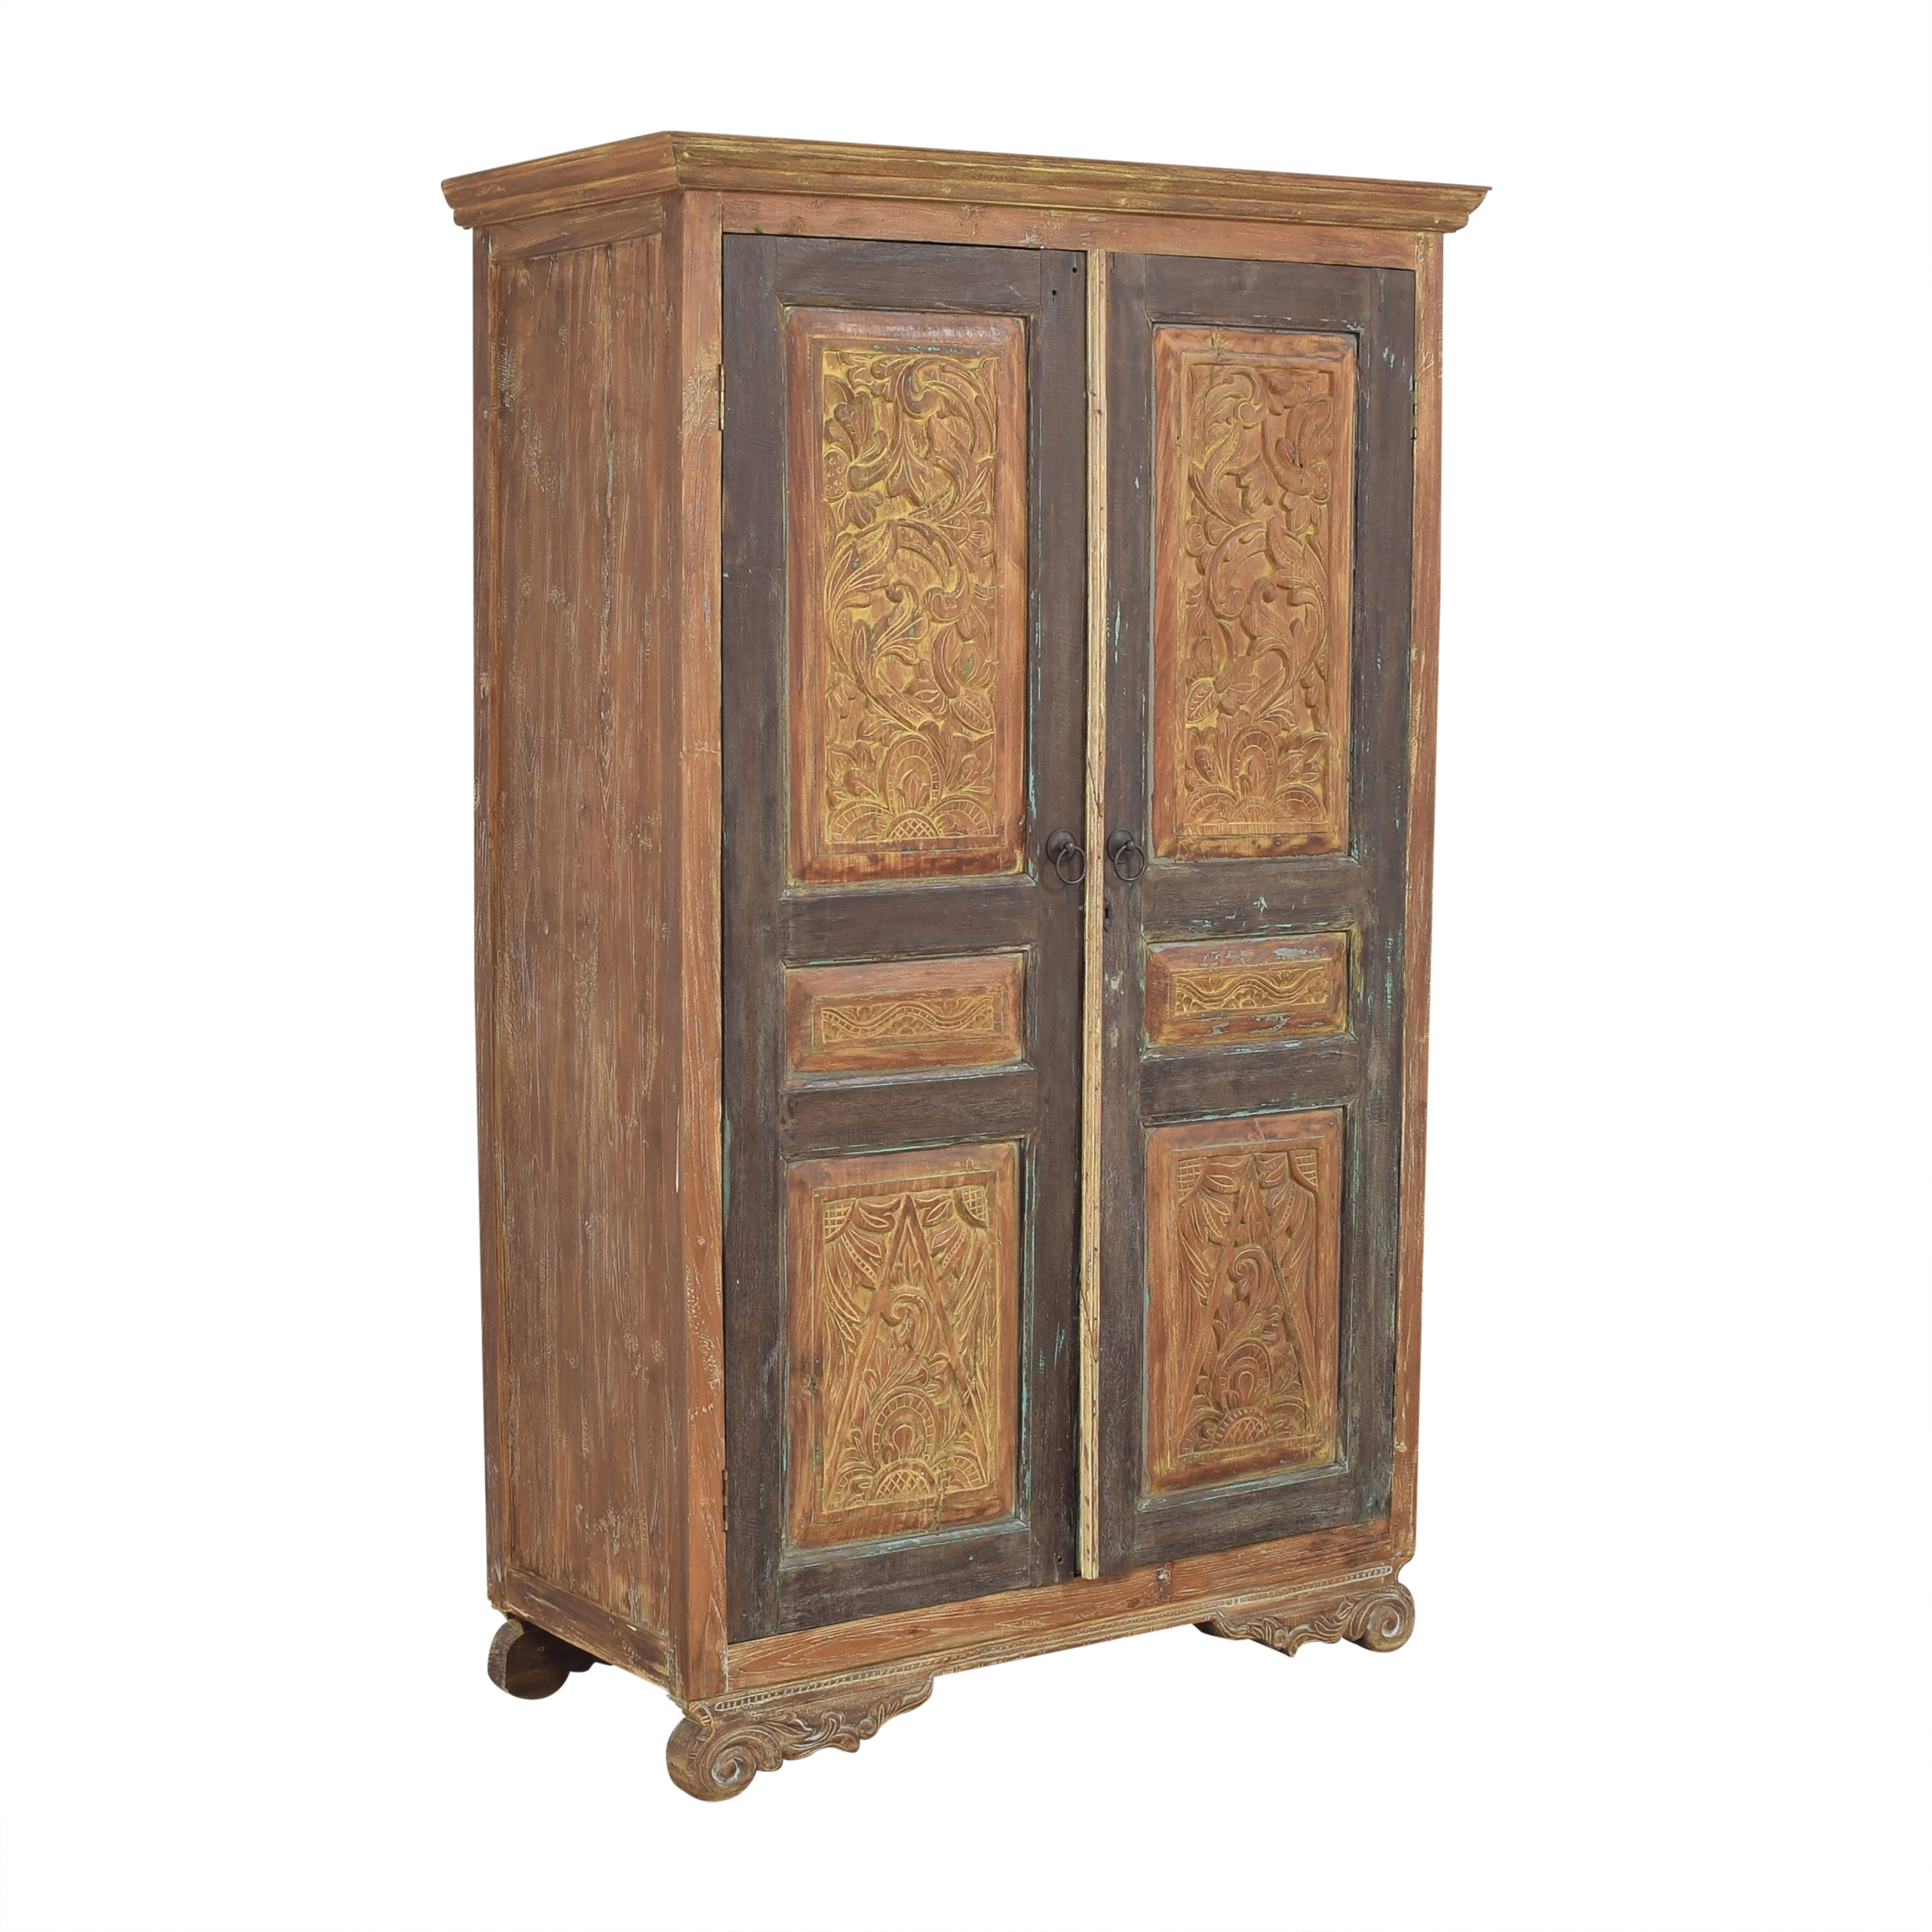 Rustic Vintage-Style Armoire Wardrobes & Armoires